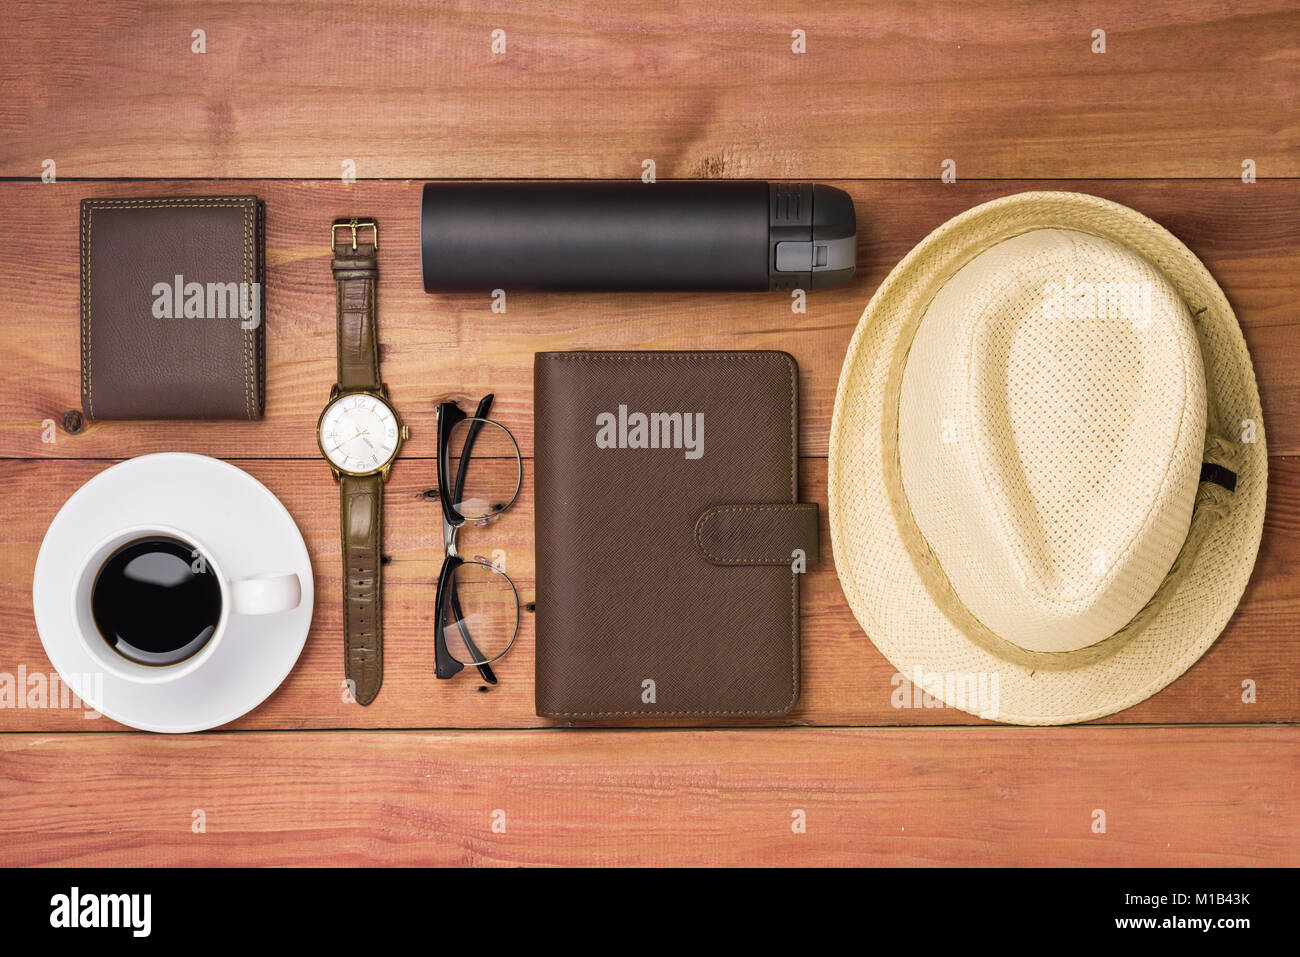 Men's casual outfits with man clothing and accessories on wooden background, Stock Photo